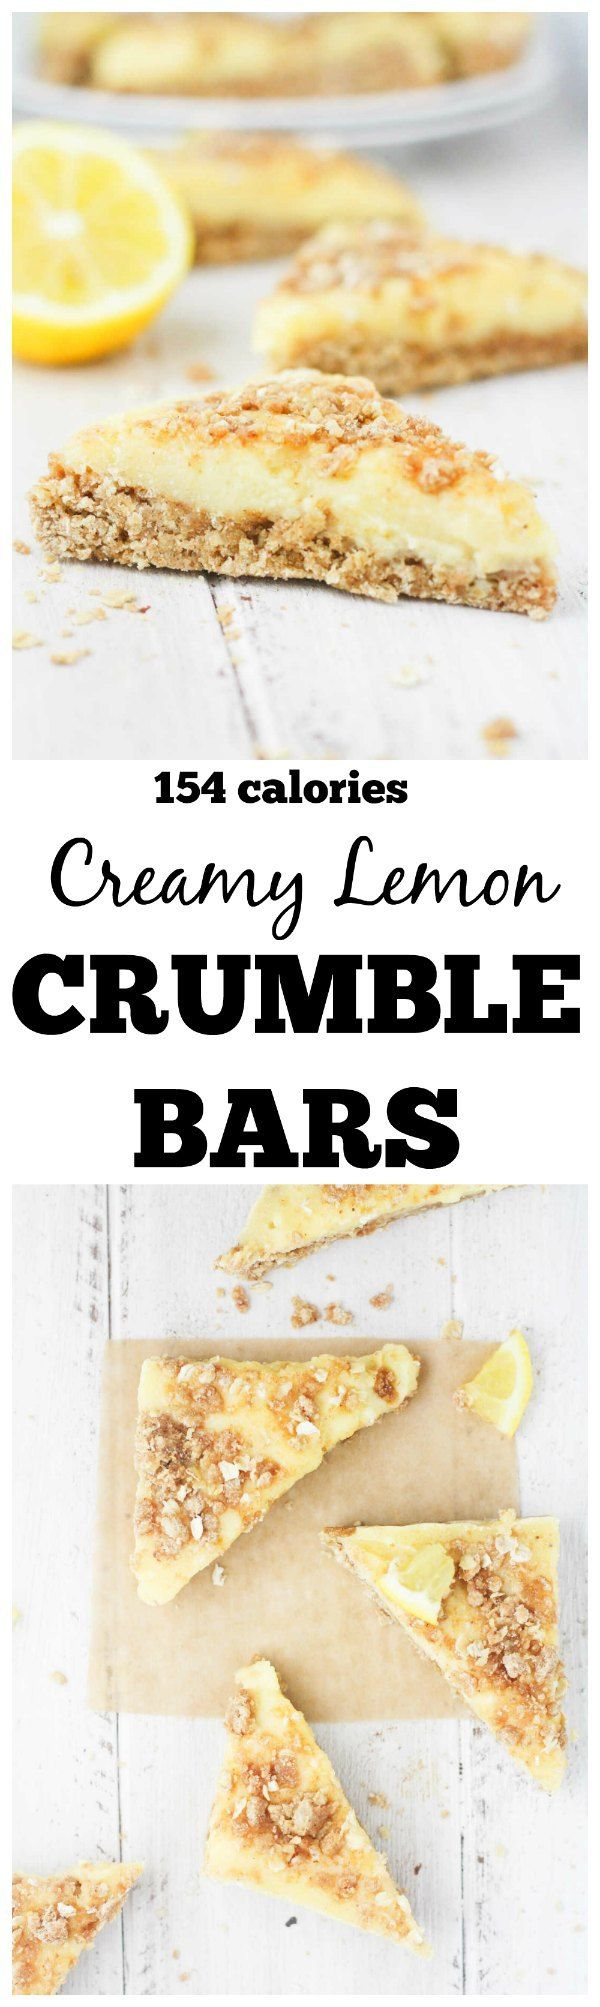 Creamy Lemon Crumble Bars - soft and chewy oatmeal bars with a zesty lemon custard filling. www.itscheatdayeveryday.com